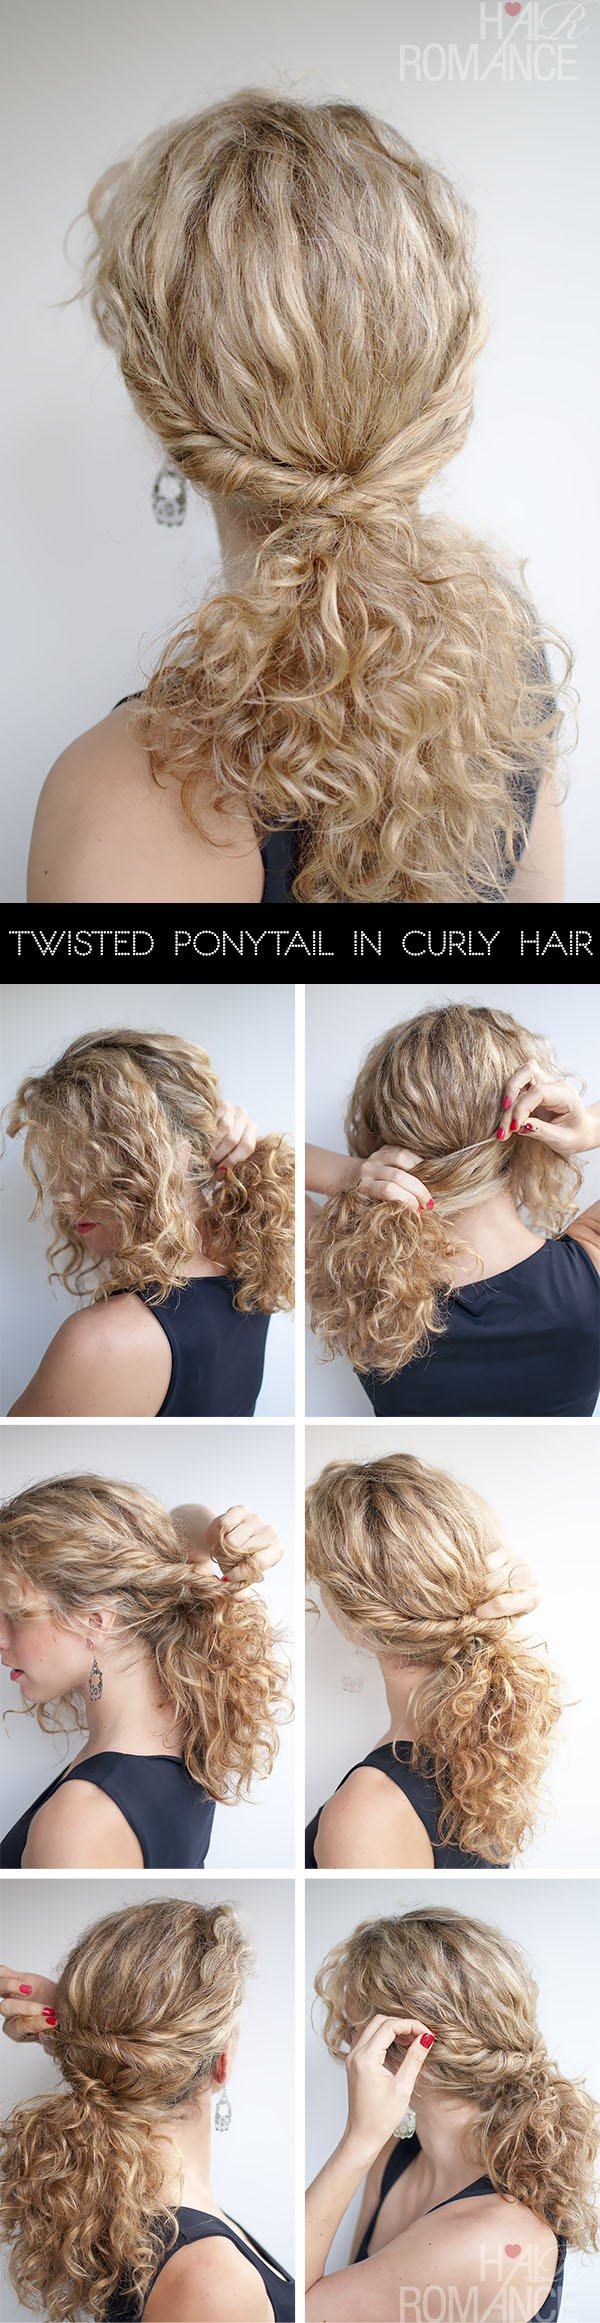 Chic twisted ponytail hairstyle tutorial for women